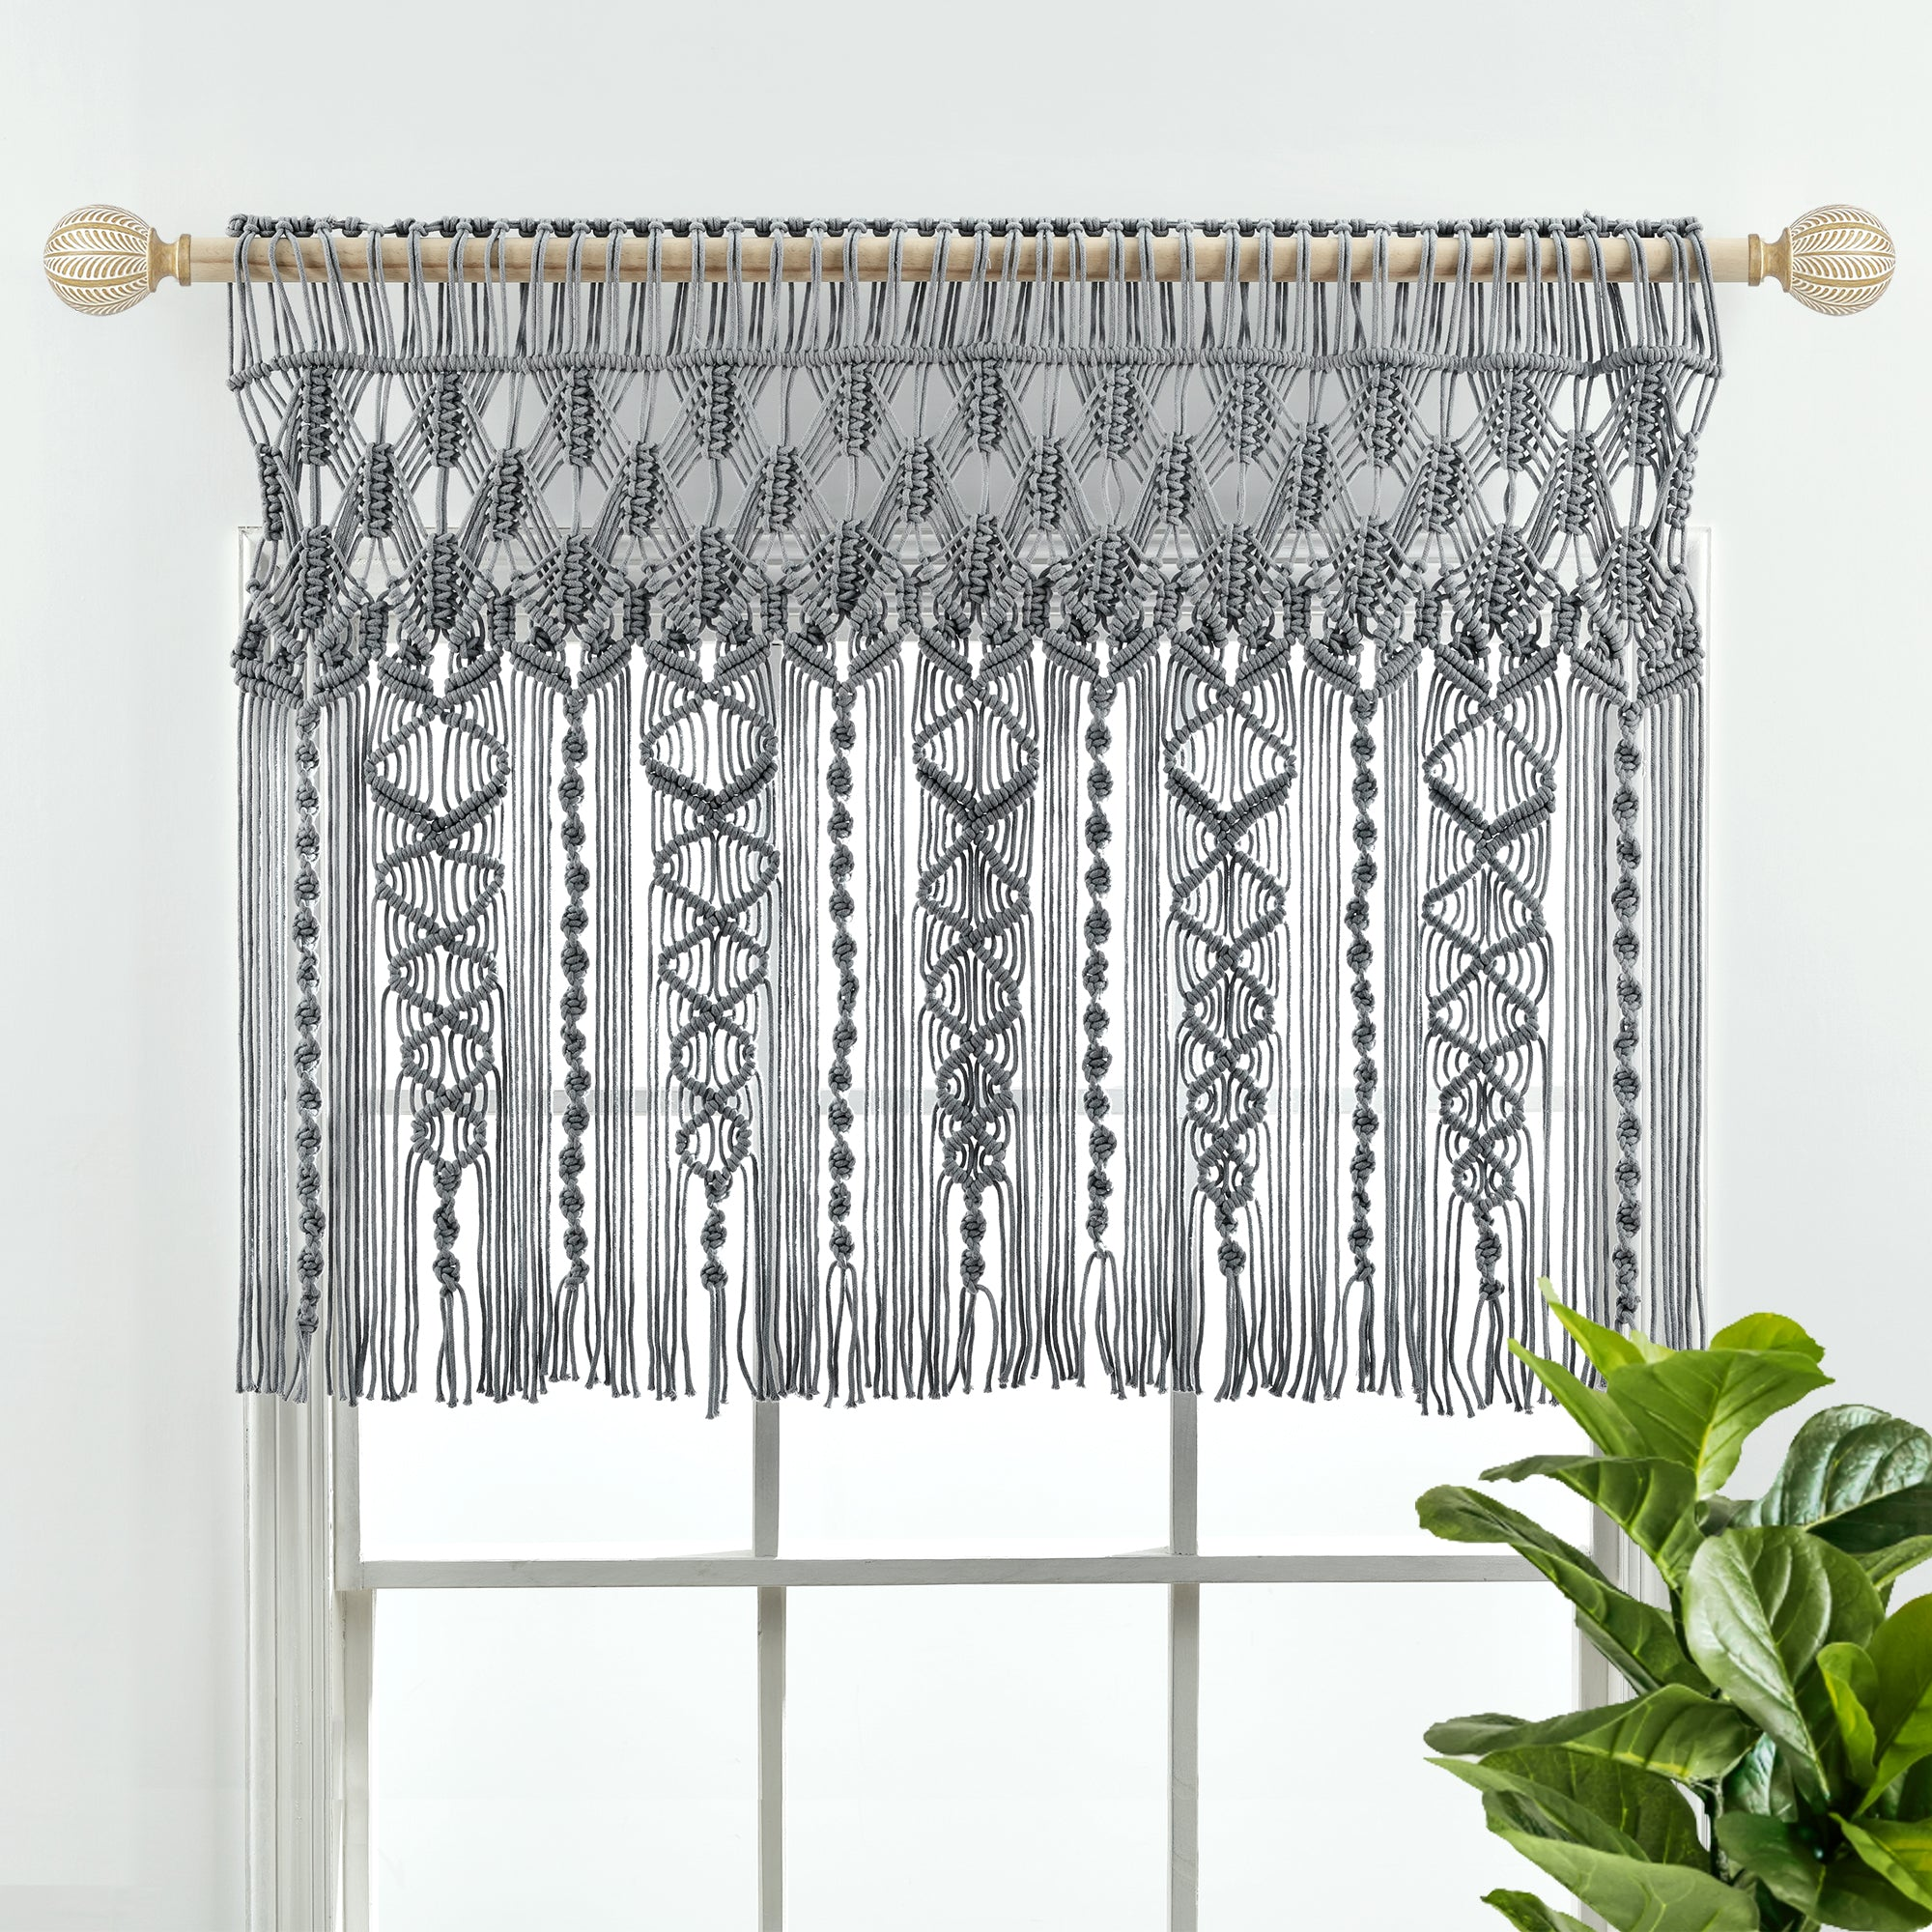 Boho Macrame Textured Cotton Valance